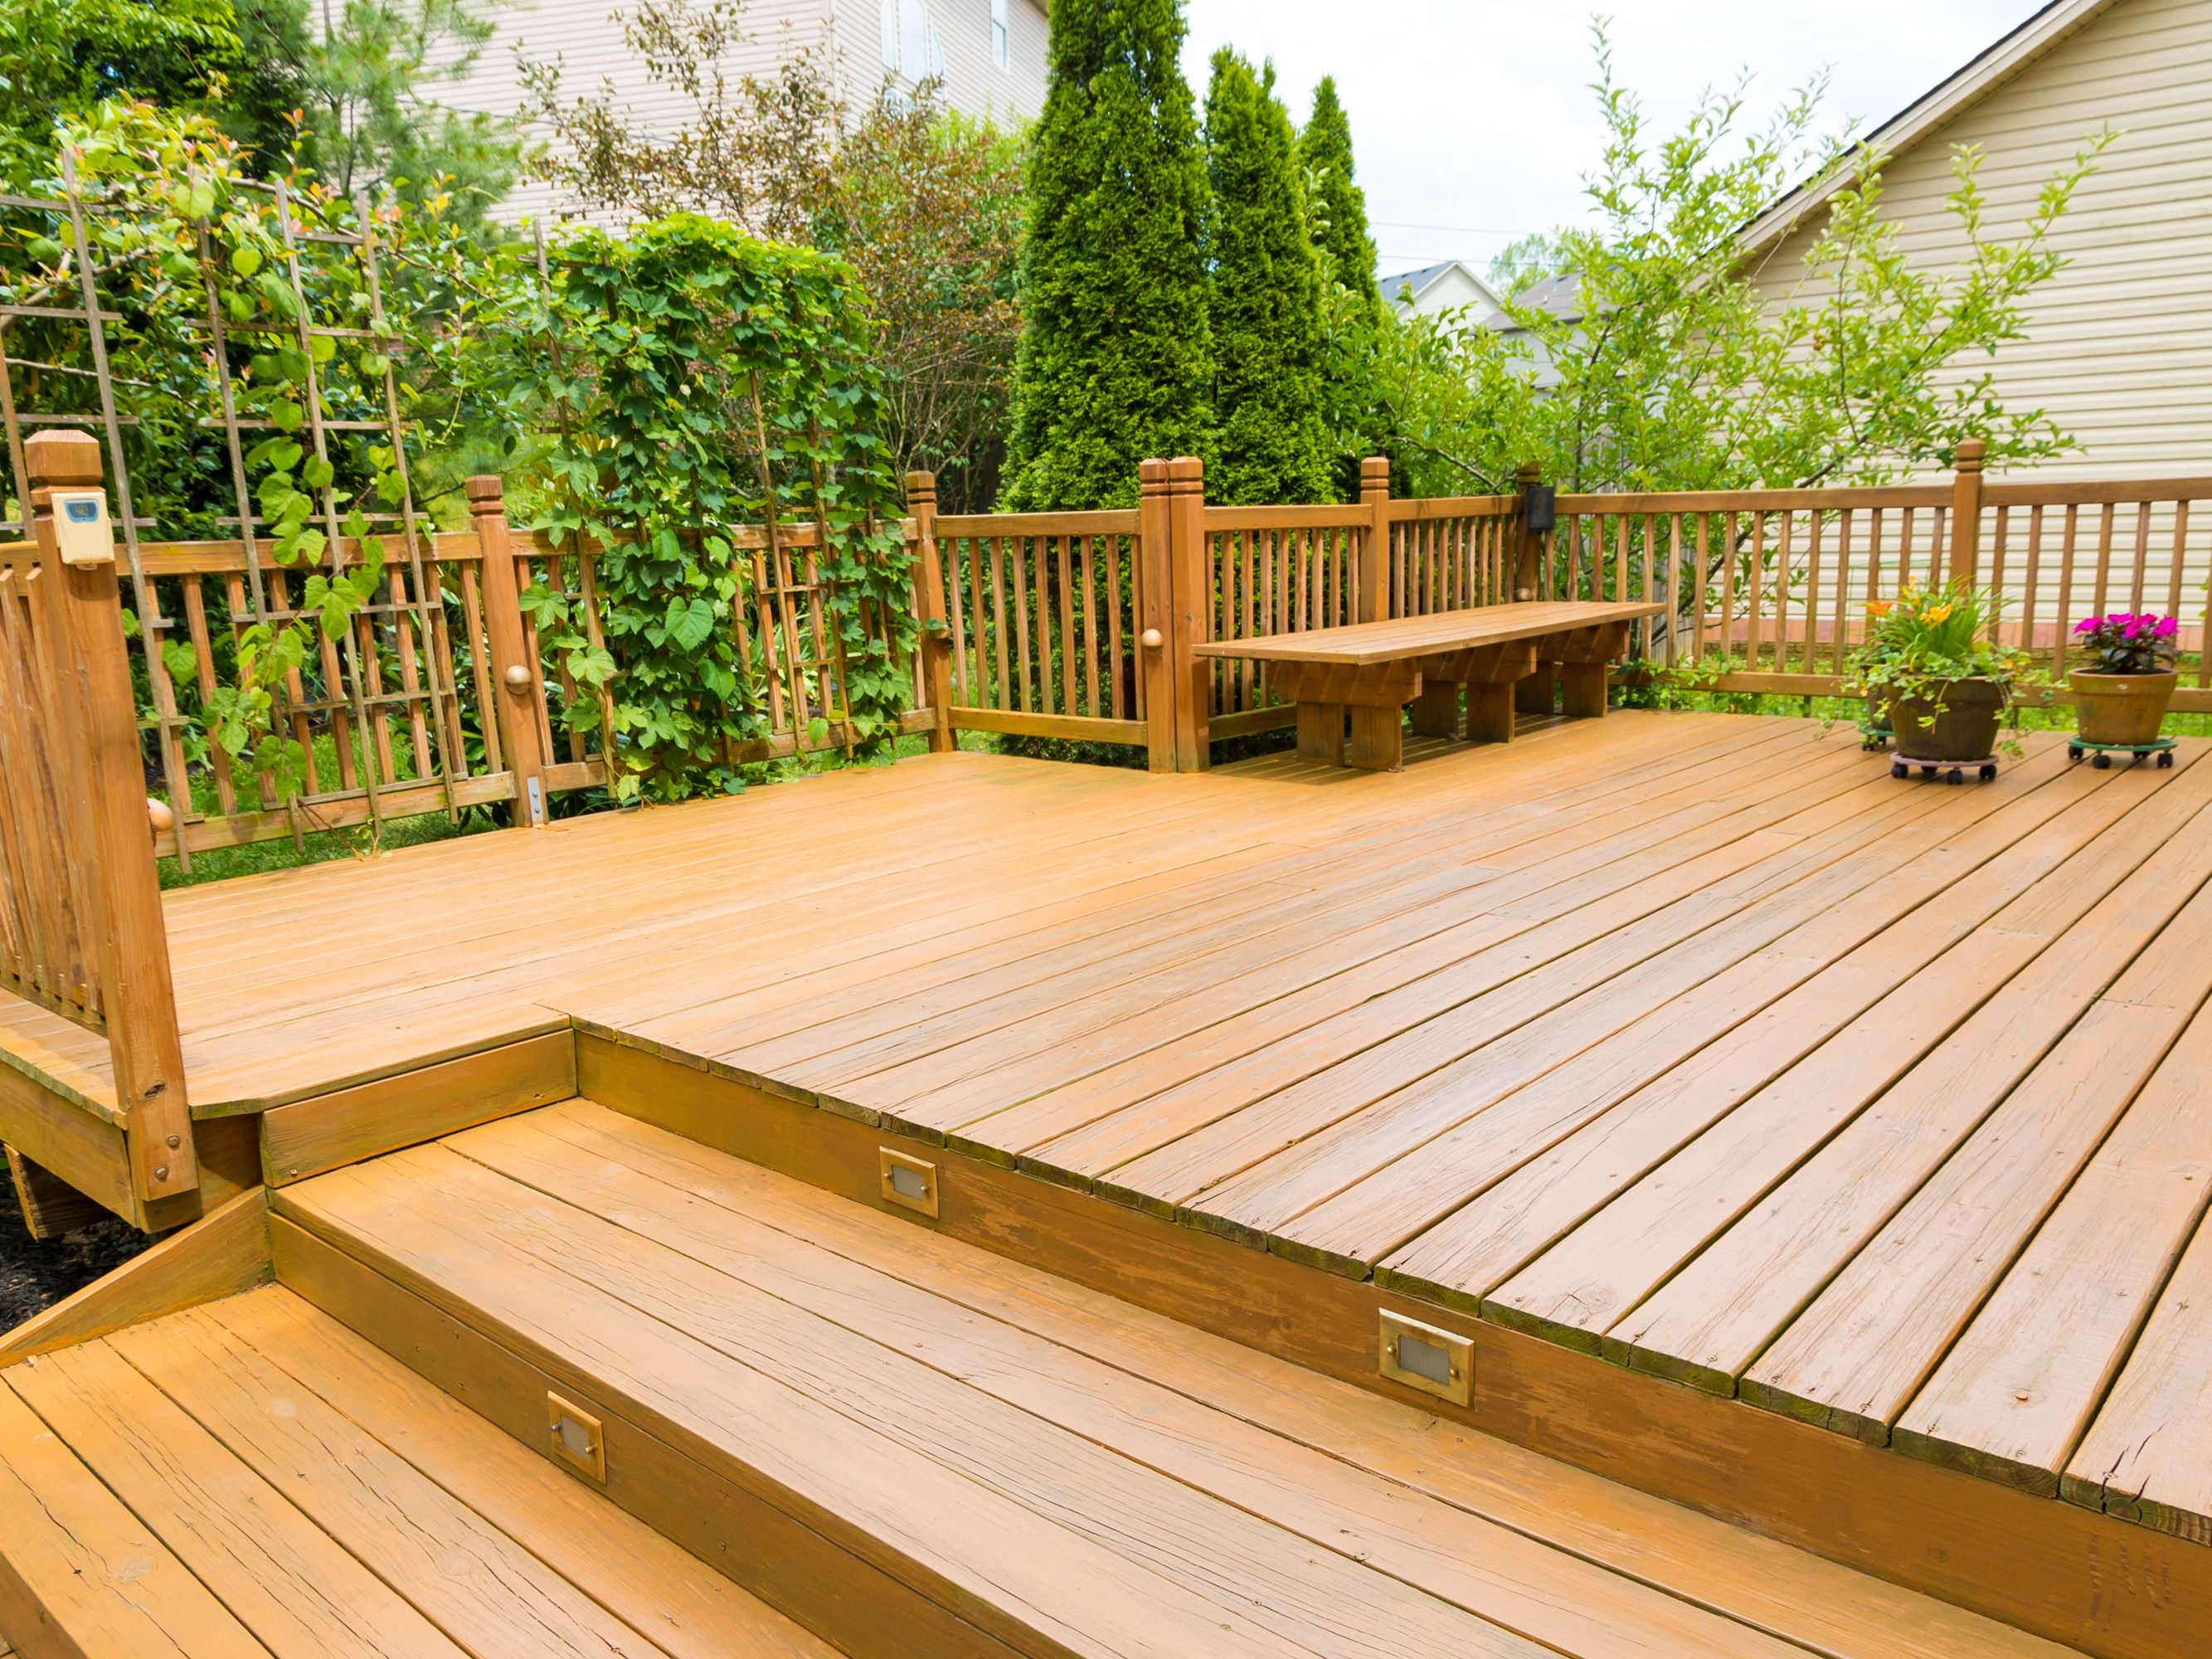 Wood And Composite Decking Pros And Cons   Best Wood For Outdoor Steps   Stair Railing   Stair Treads   Handrail   Treated Lumber   Stair Stringer